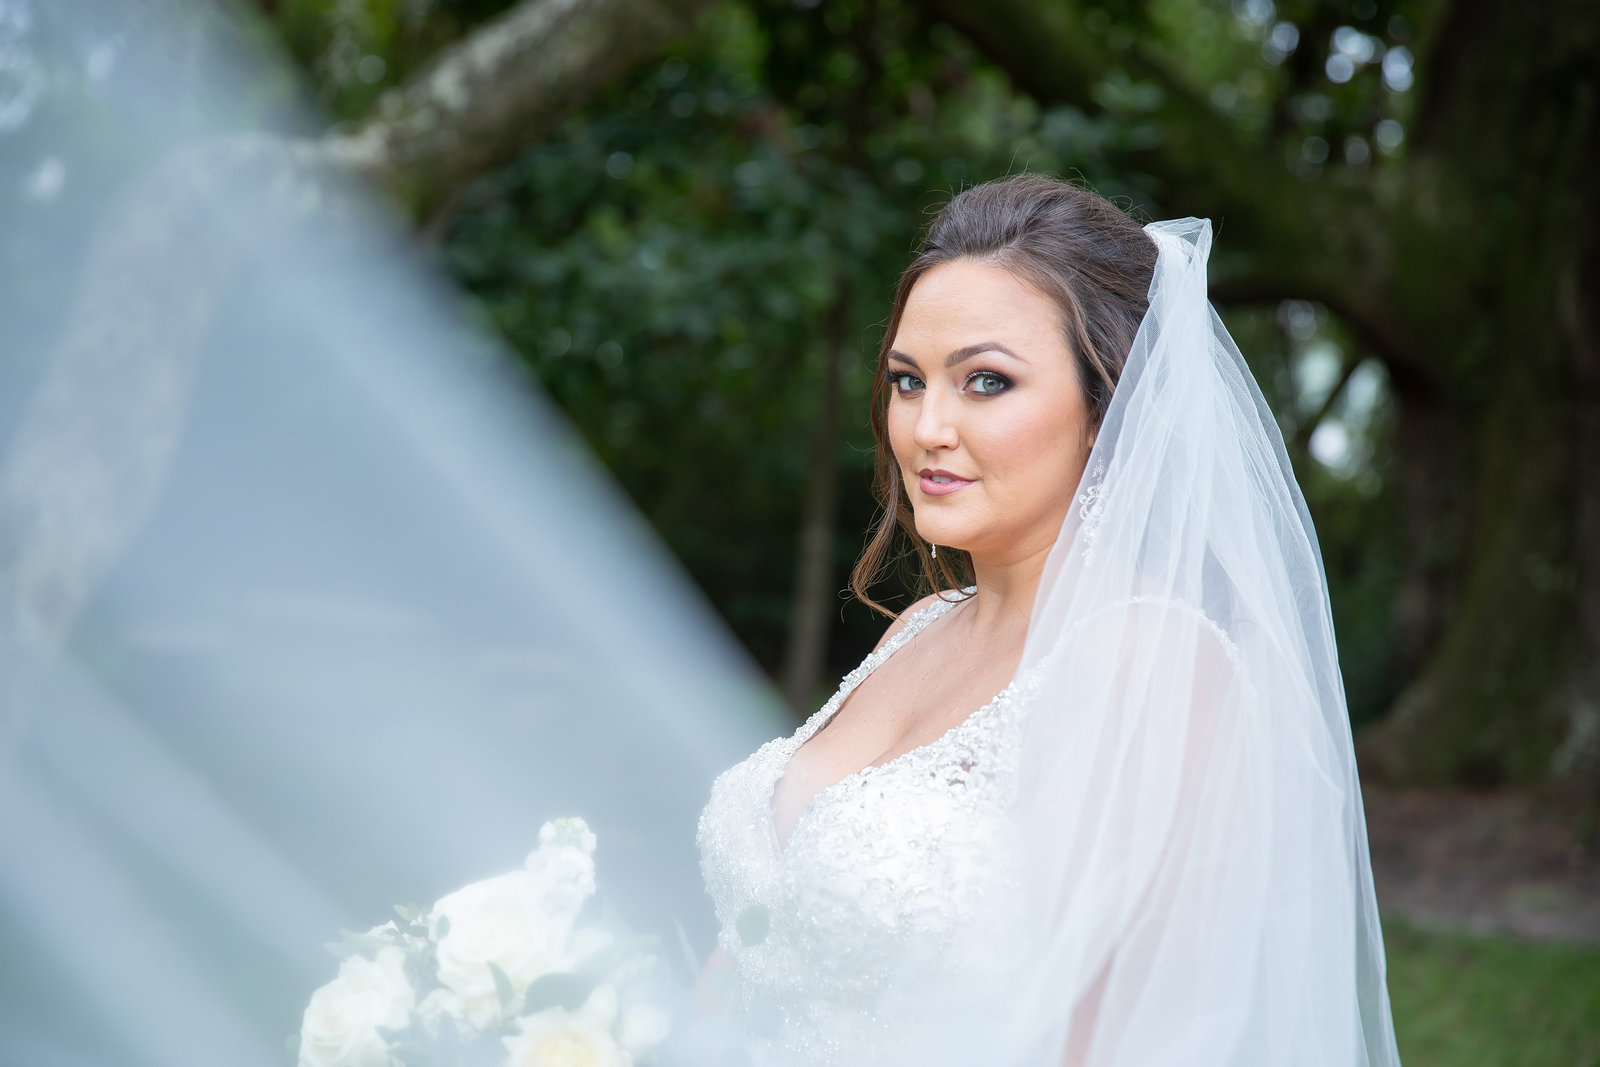 Bridal Portrait Photography in Biloxi and Gulfport